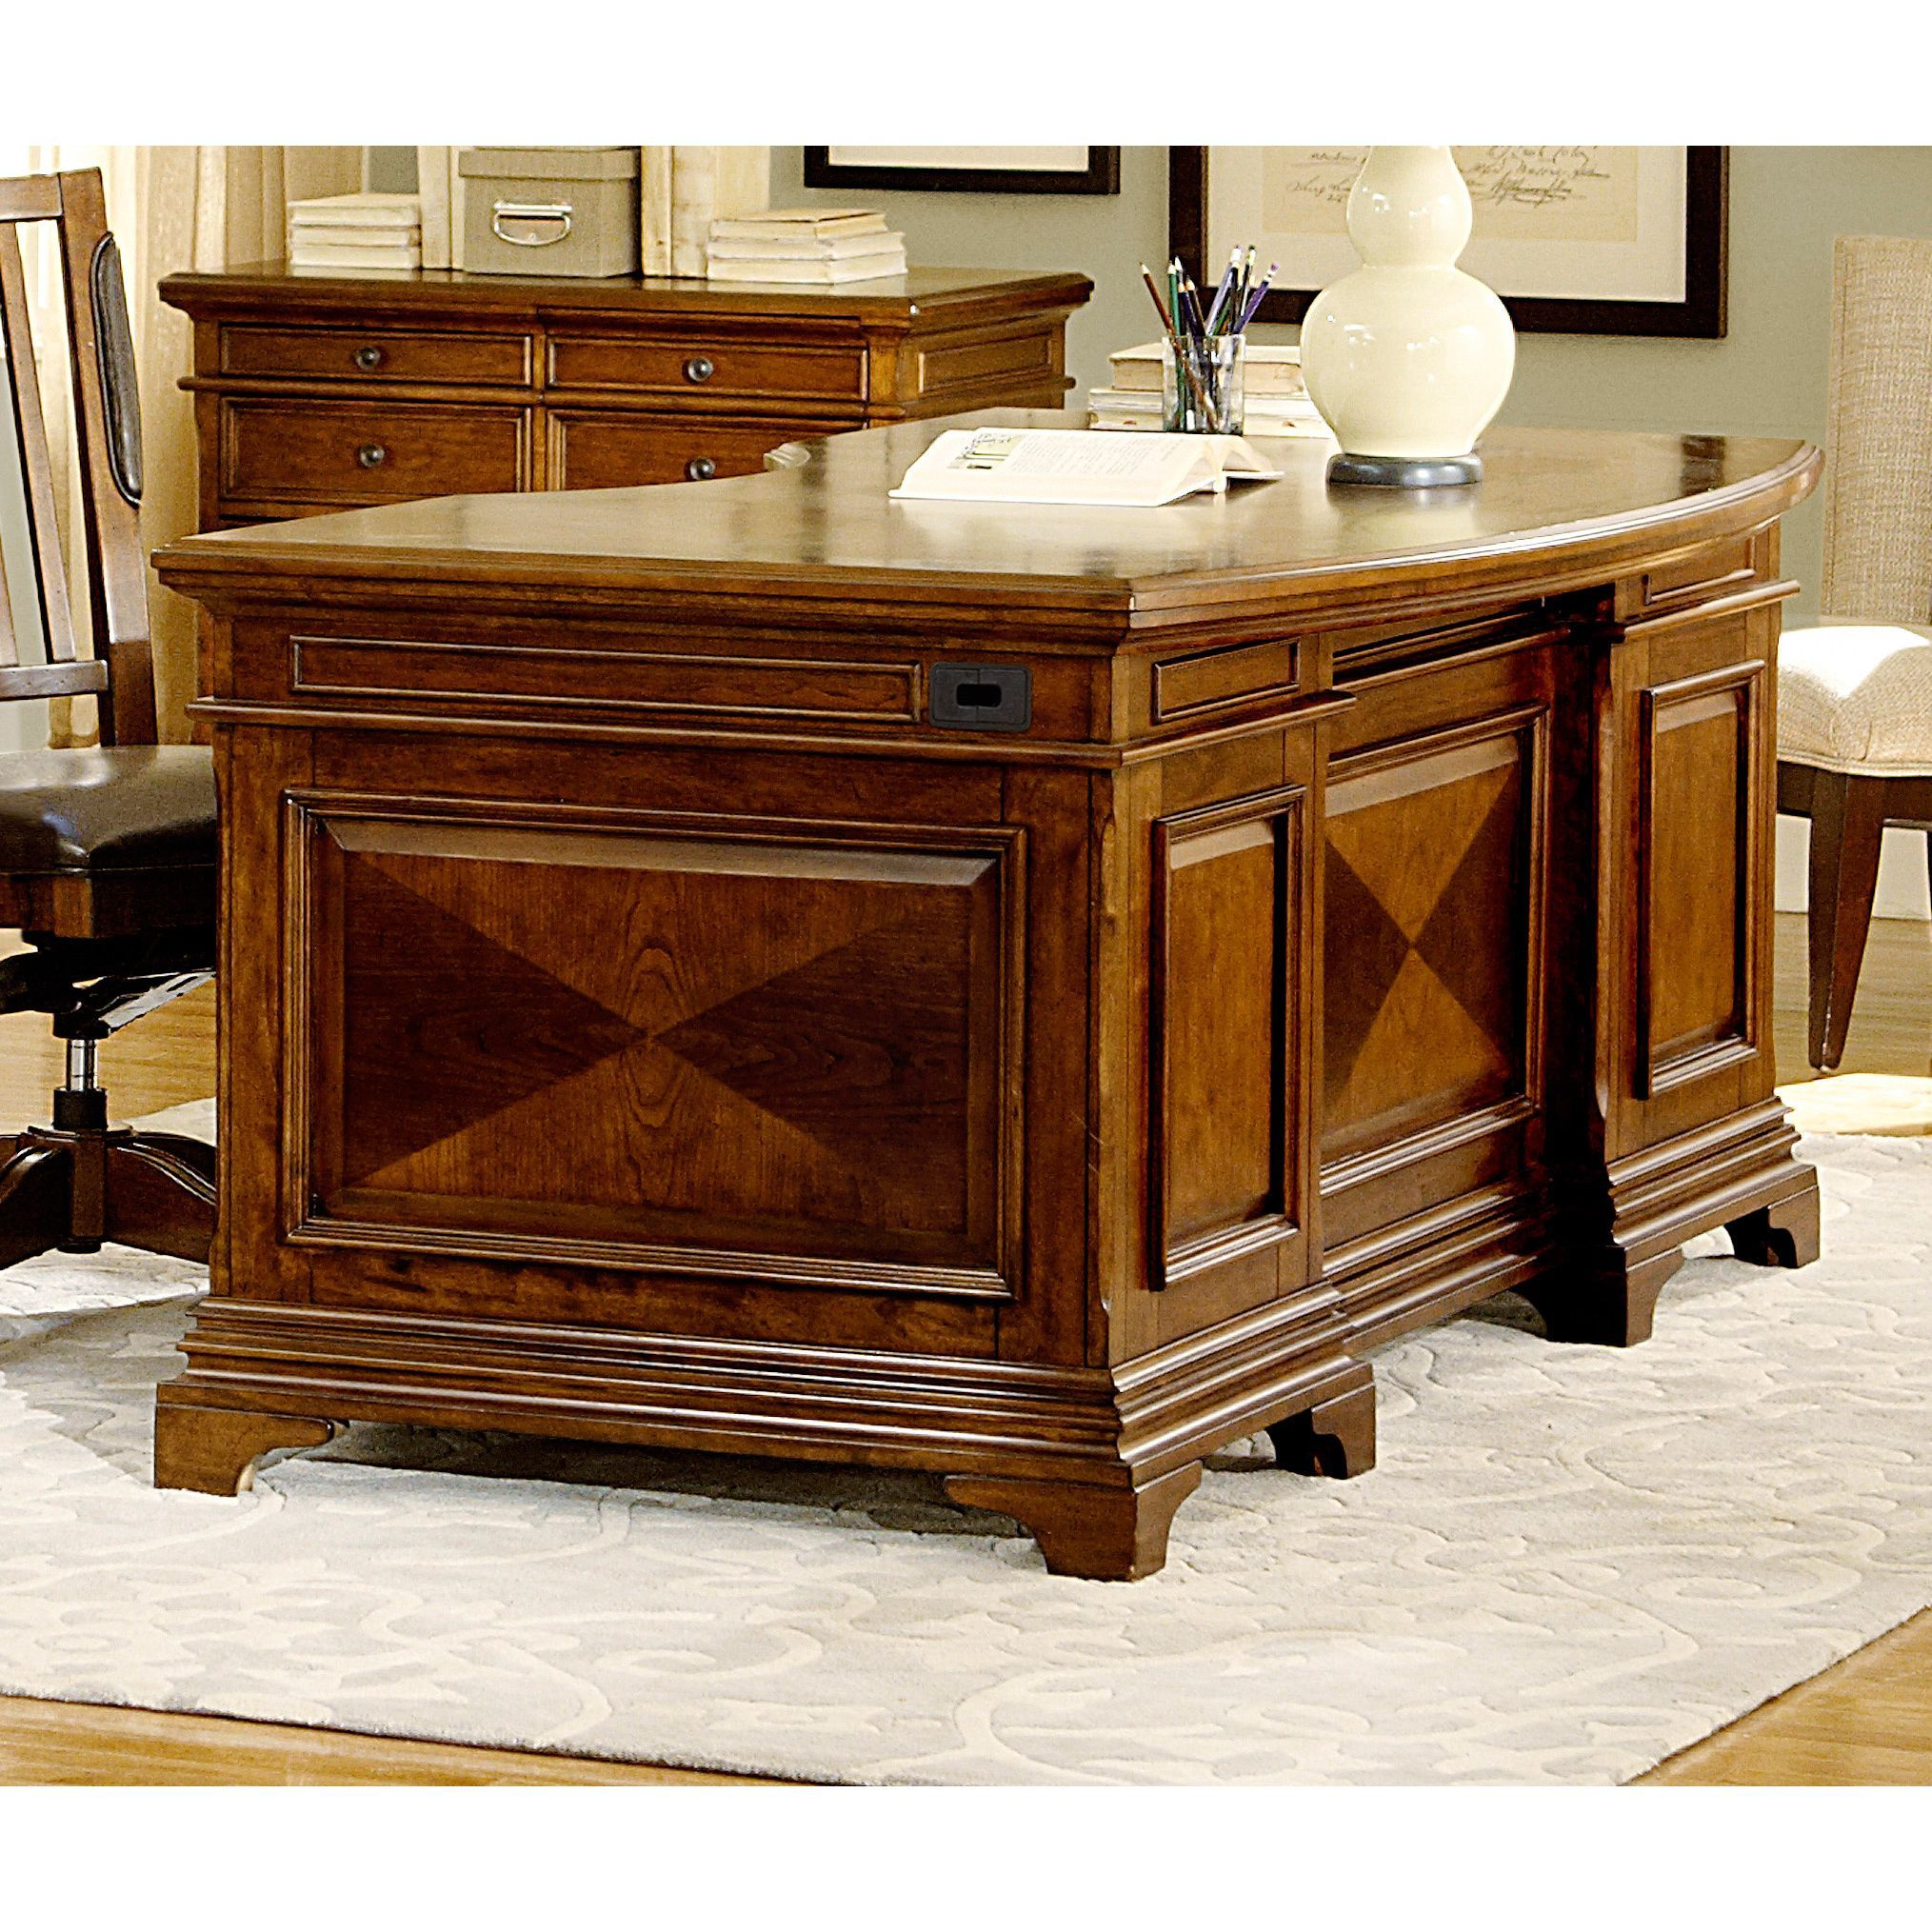 This Traditionally Styled Ethan Executive Desk Is An Ergonomic And Elegant Office Solution At 66 Inches The Curved Desktop Shape Provides Ample Worke